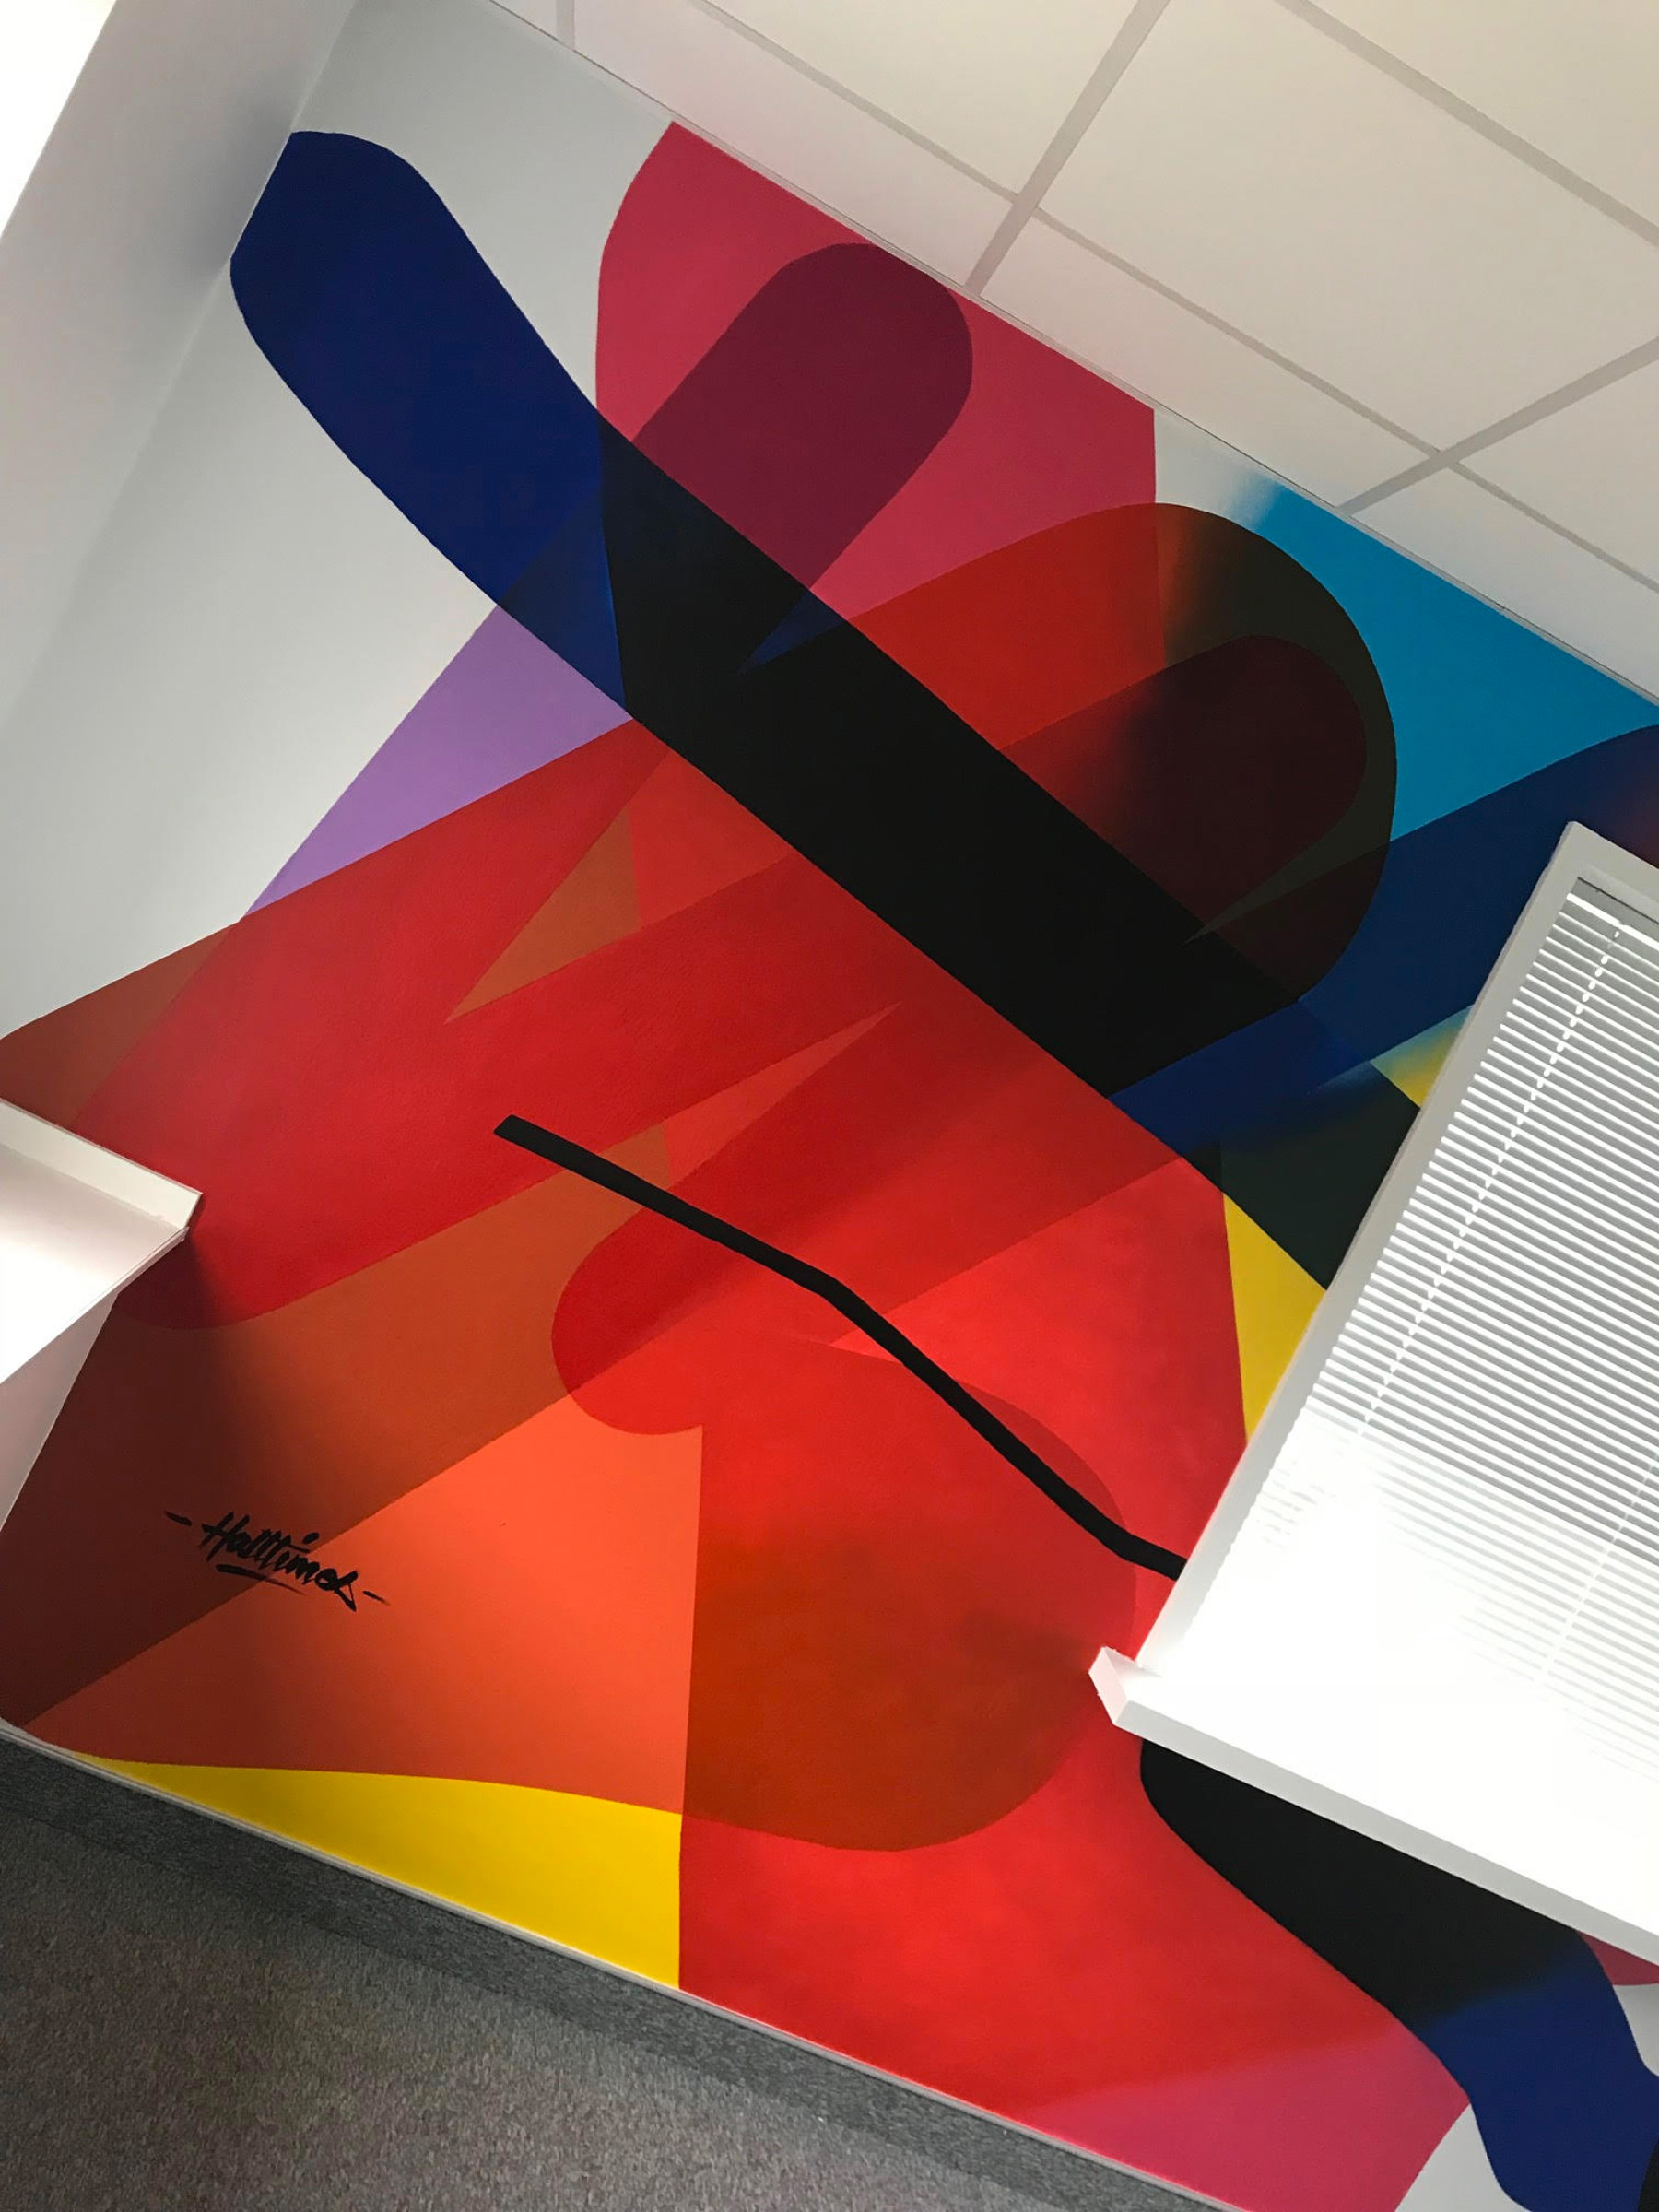 graphic_design_wall_couleur